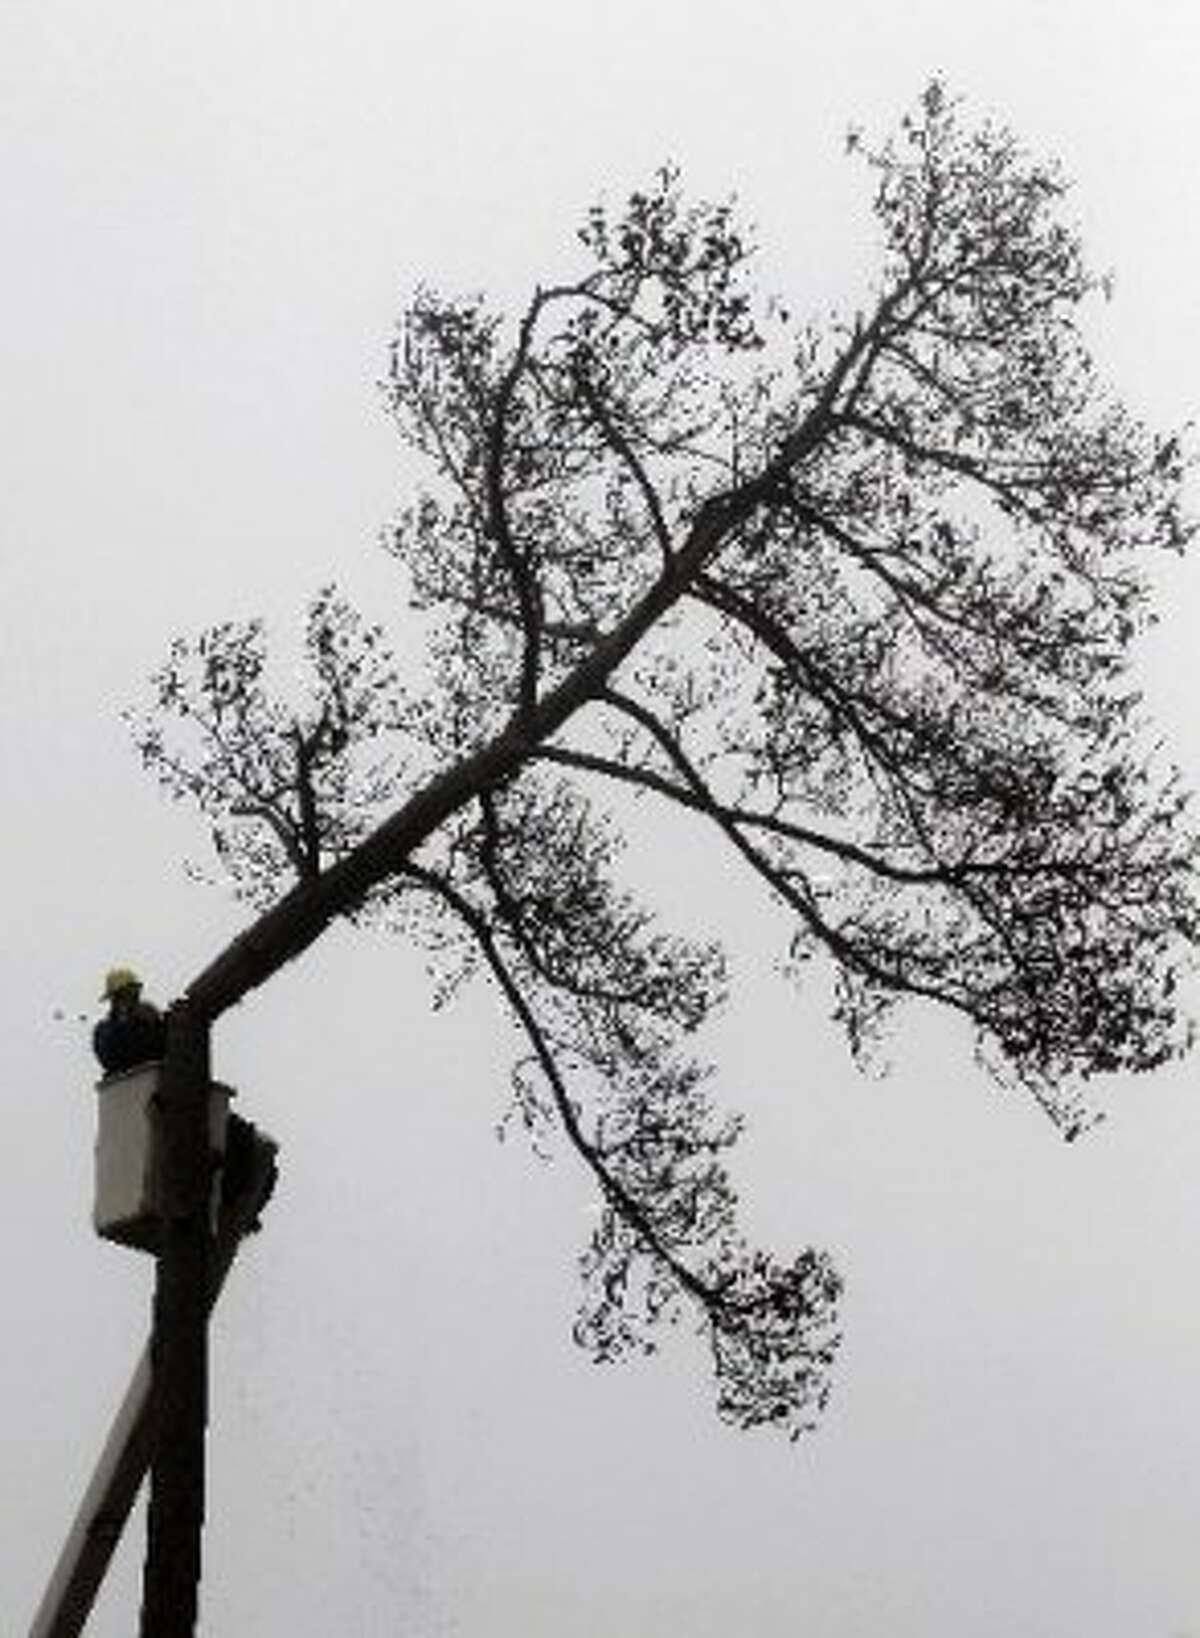 Omar Araujo cuts down a dead tree at Meyer in the morning fog Thursday, Dec. 29, 2011, in Houston. More than 1,800 dead trees are being removed from the park due to the ongoing drought. (David J. Phillip / AP)